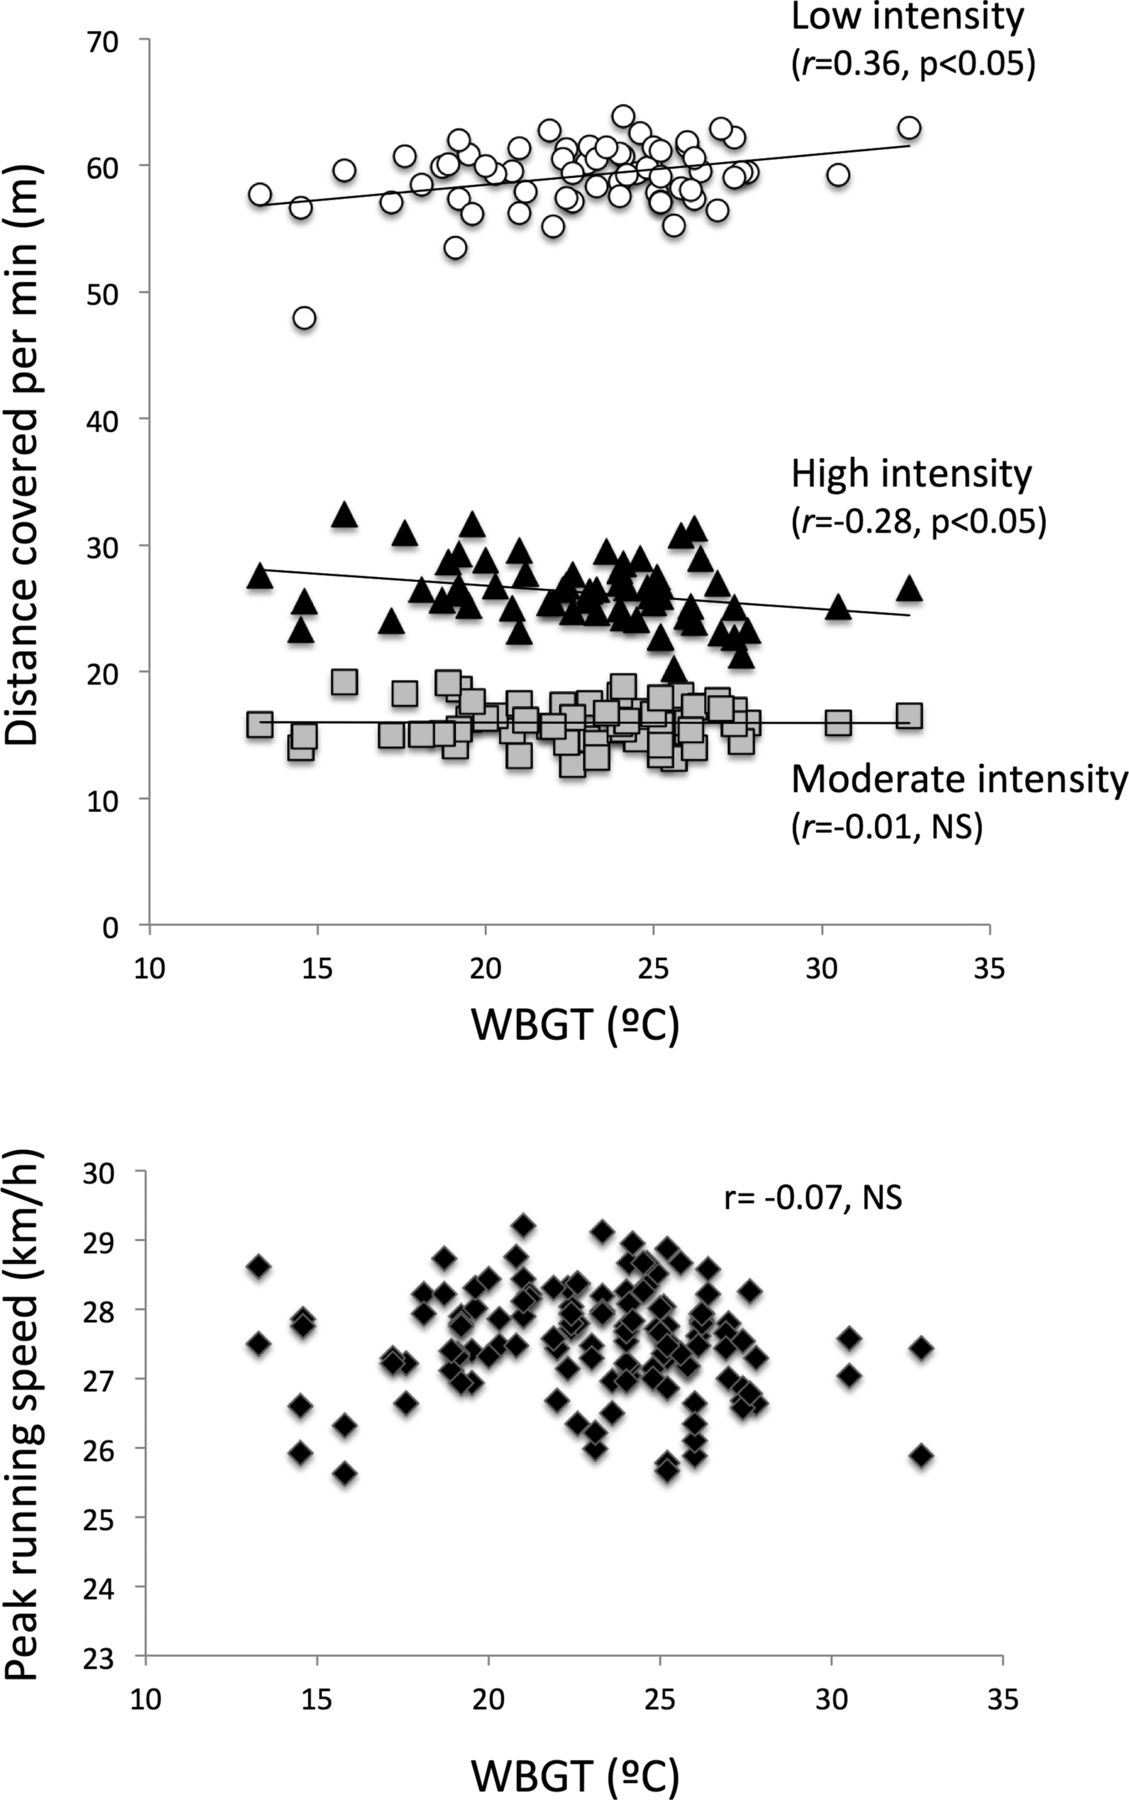 The association of environmental heat stress with